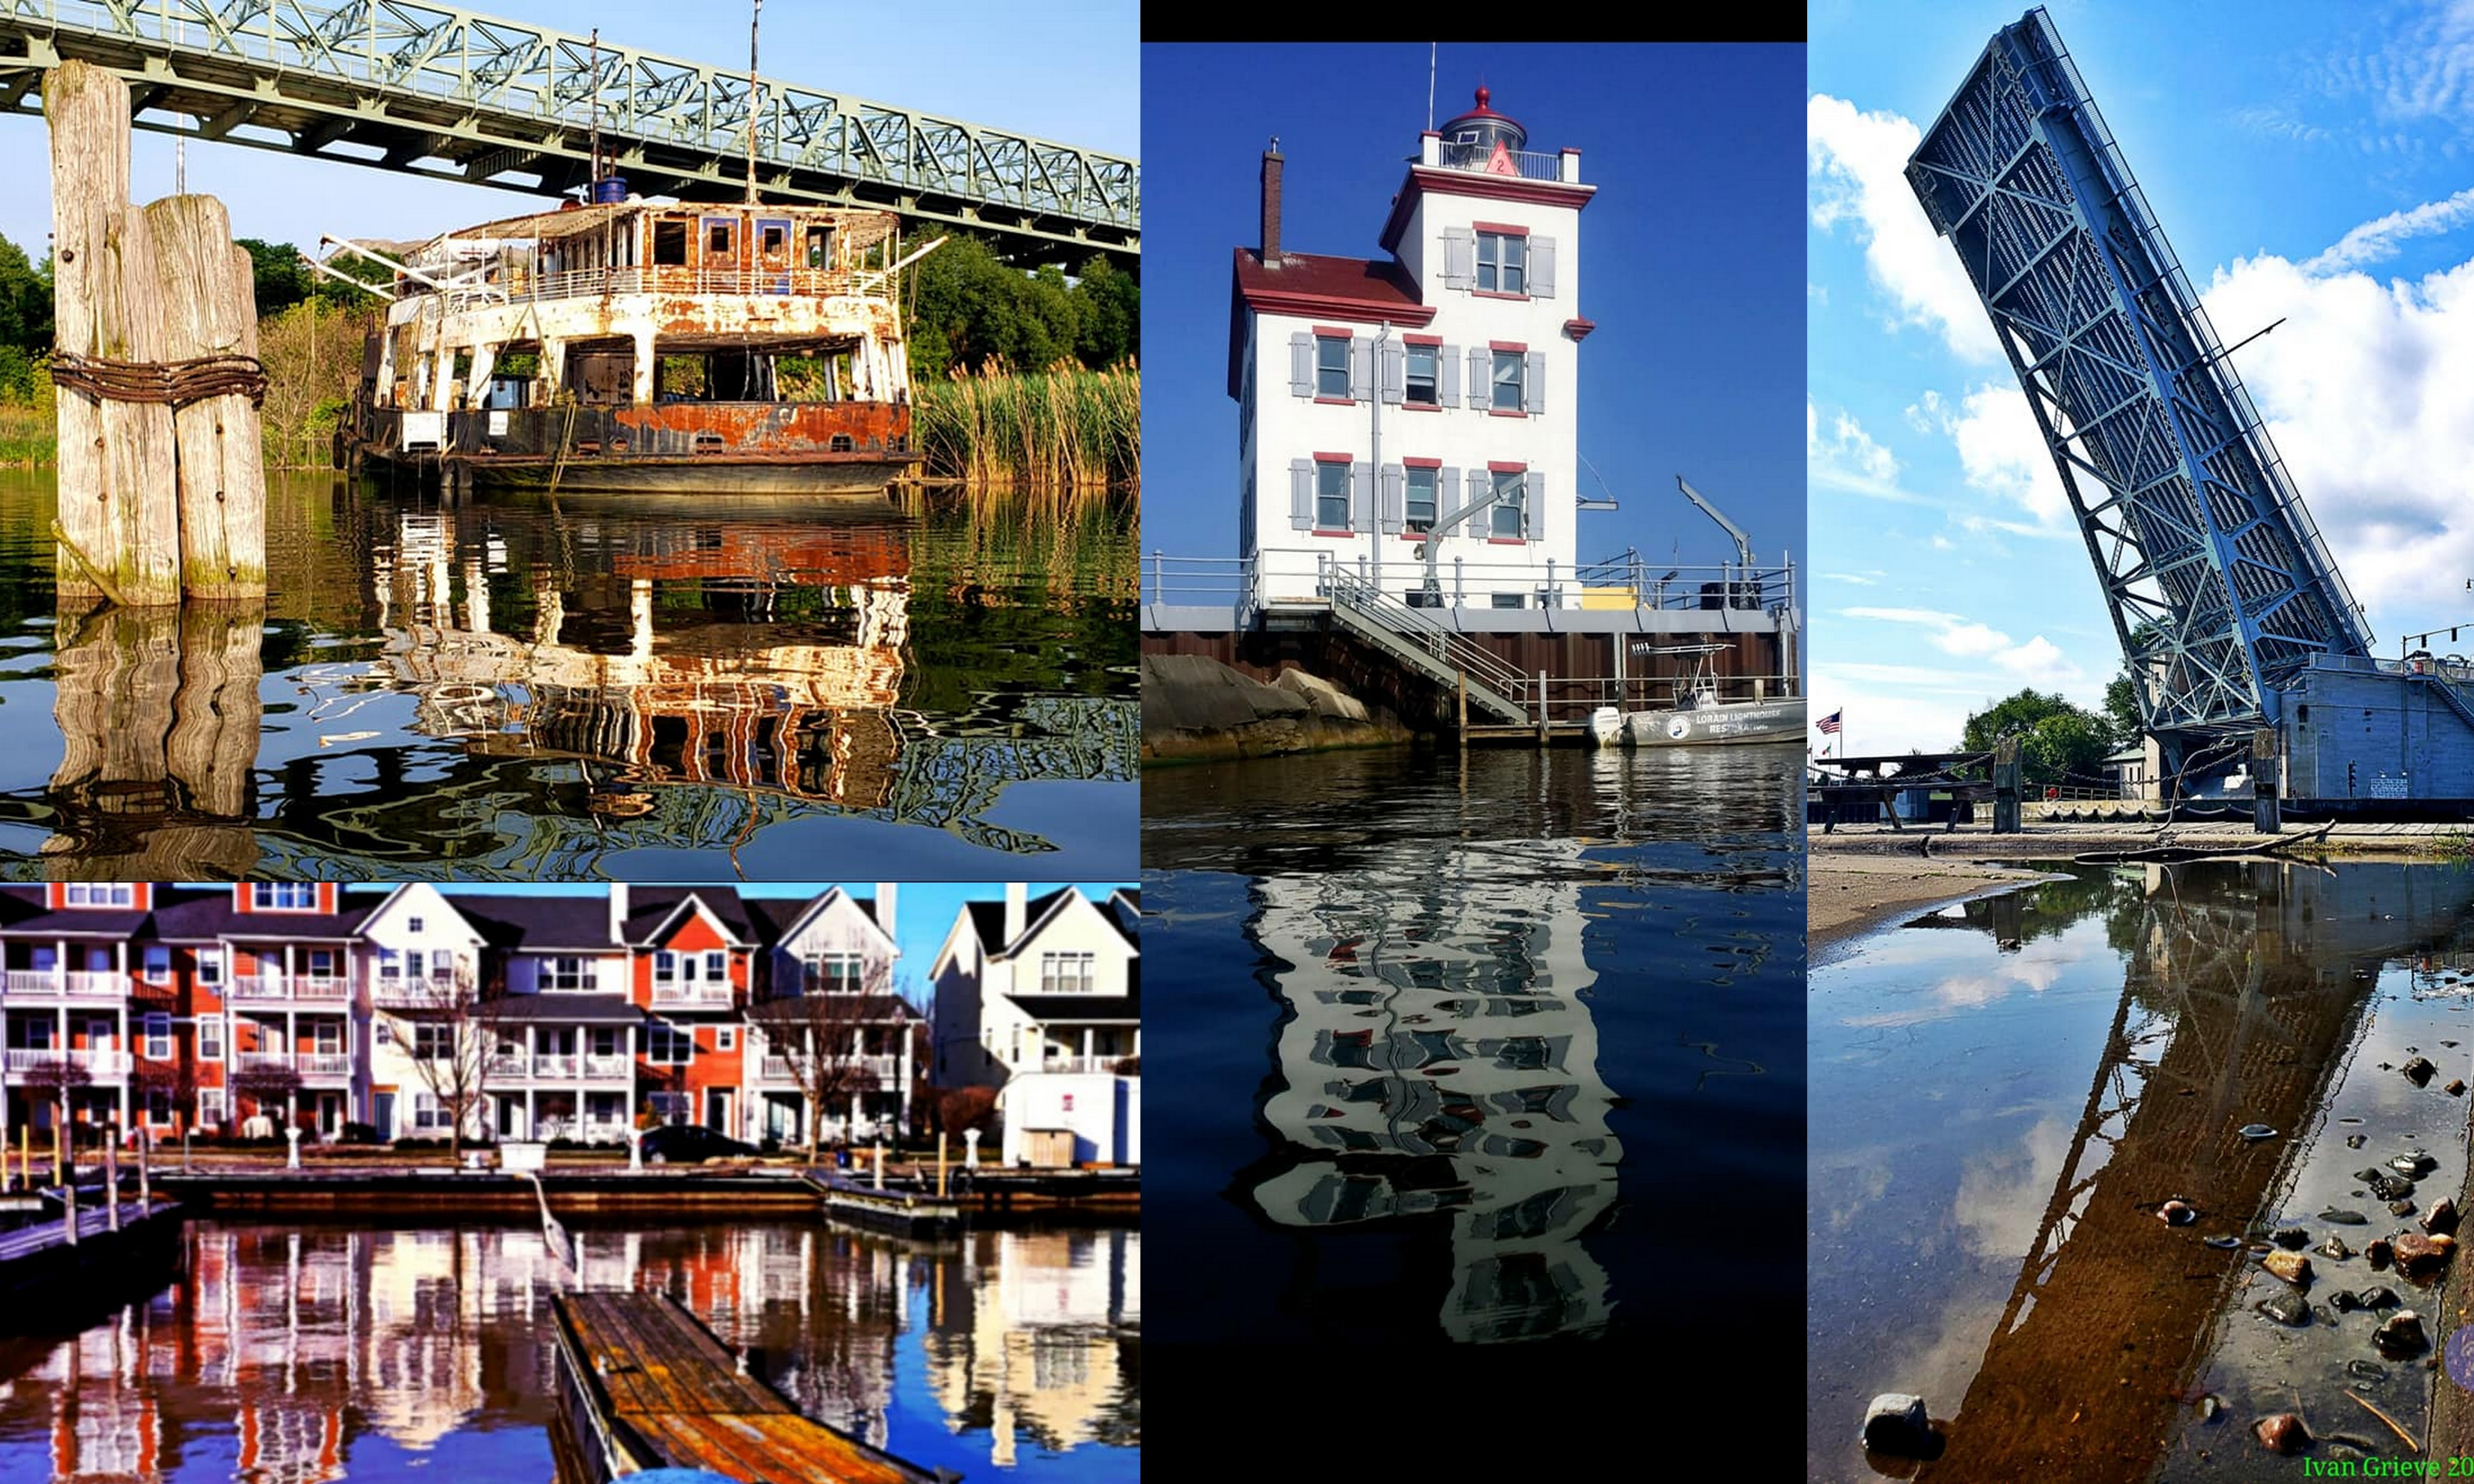 A four photo collage of reflections in the water of well-known local spots